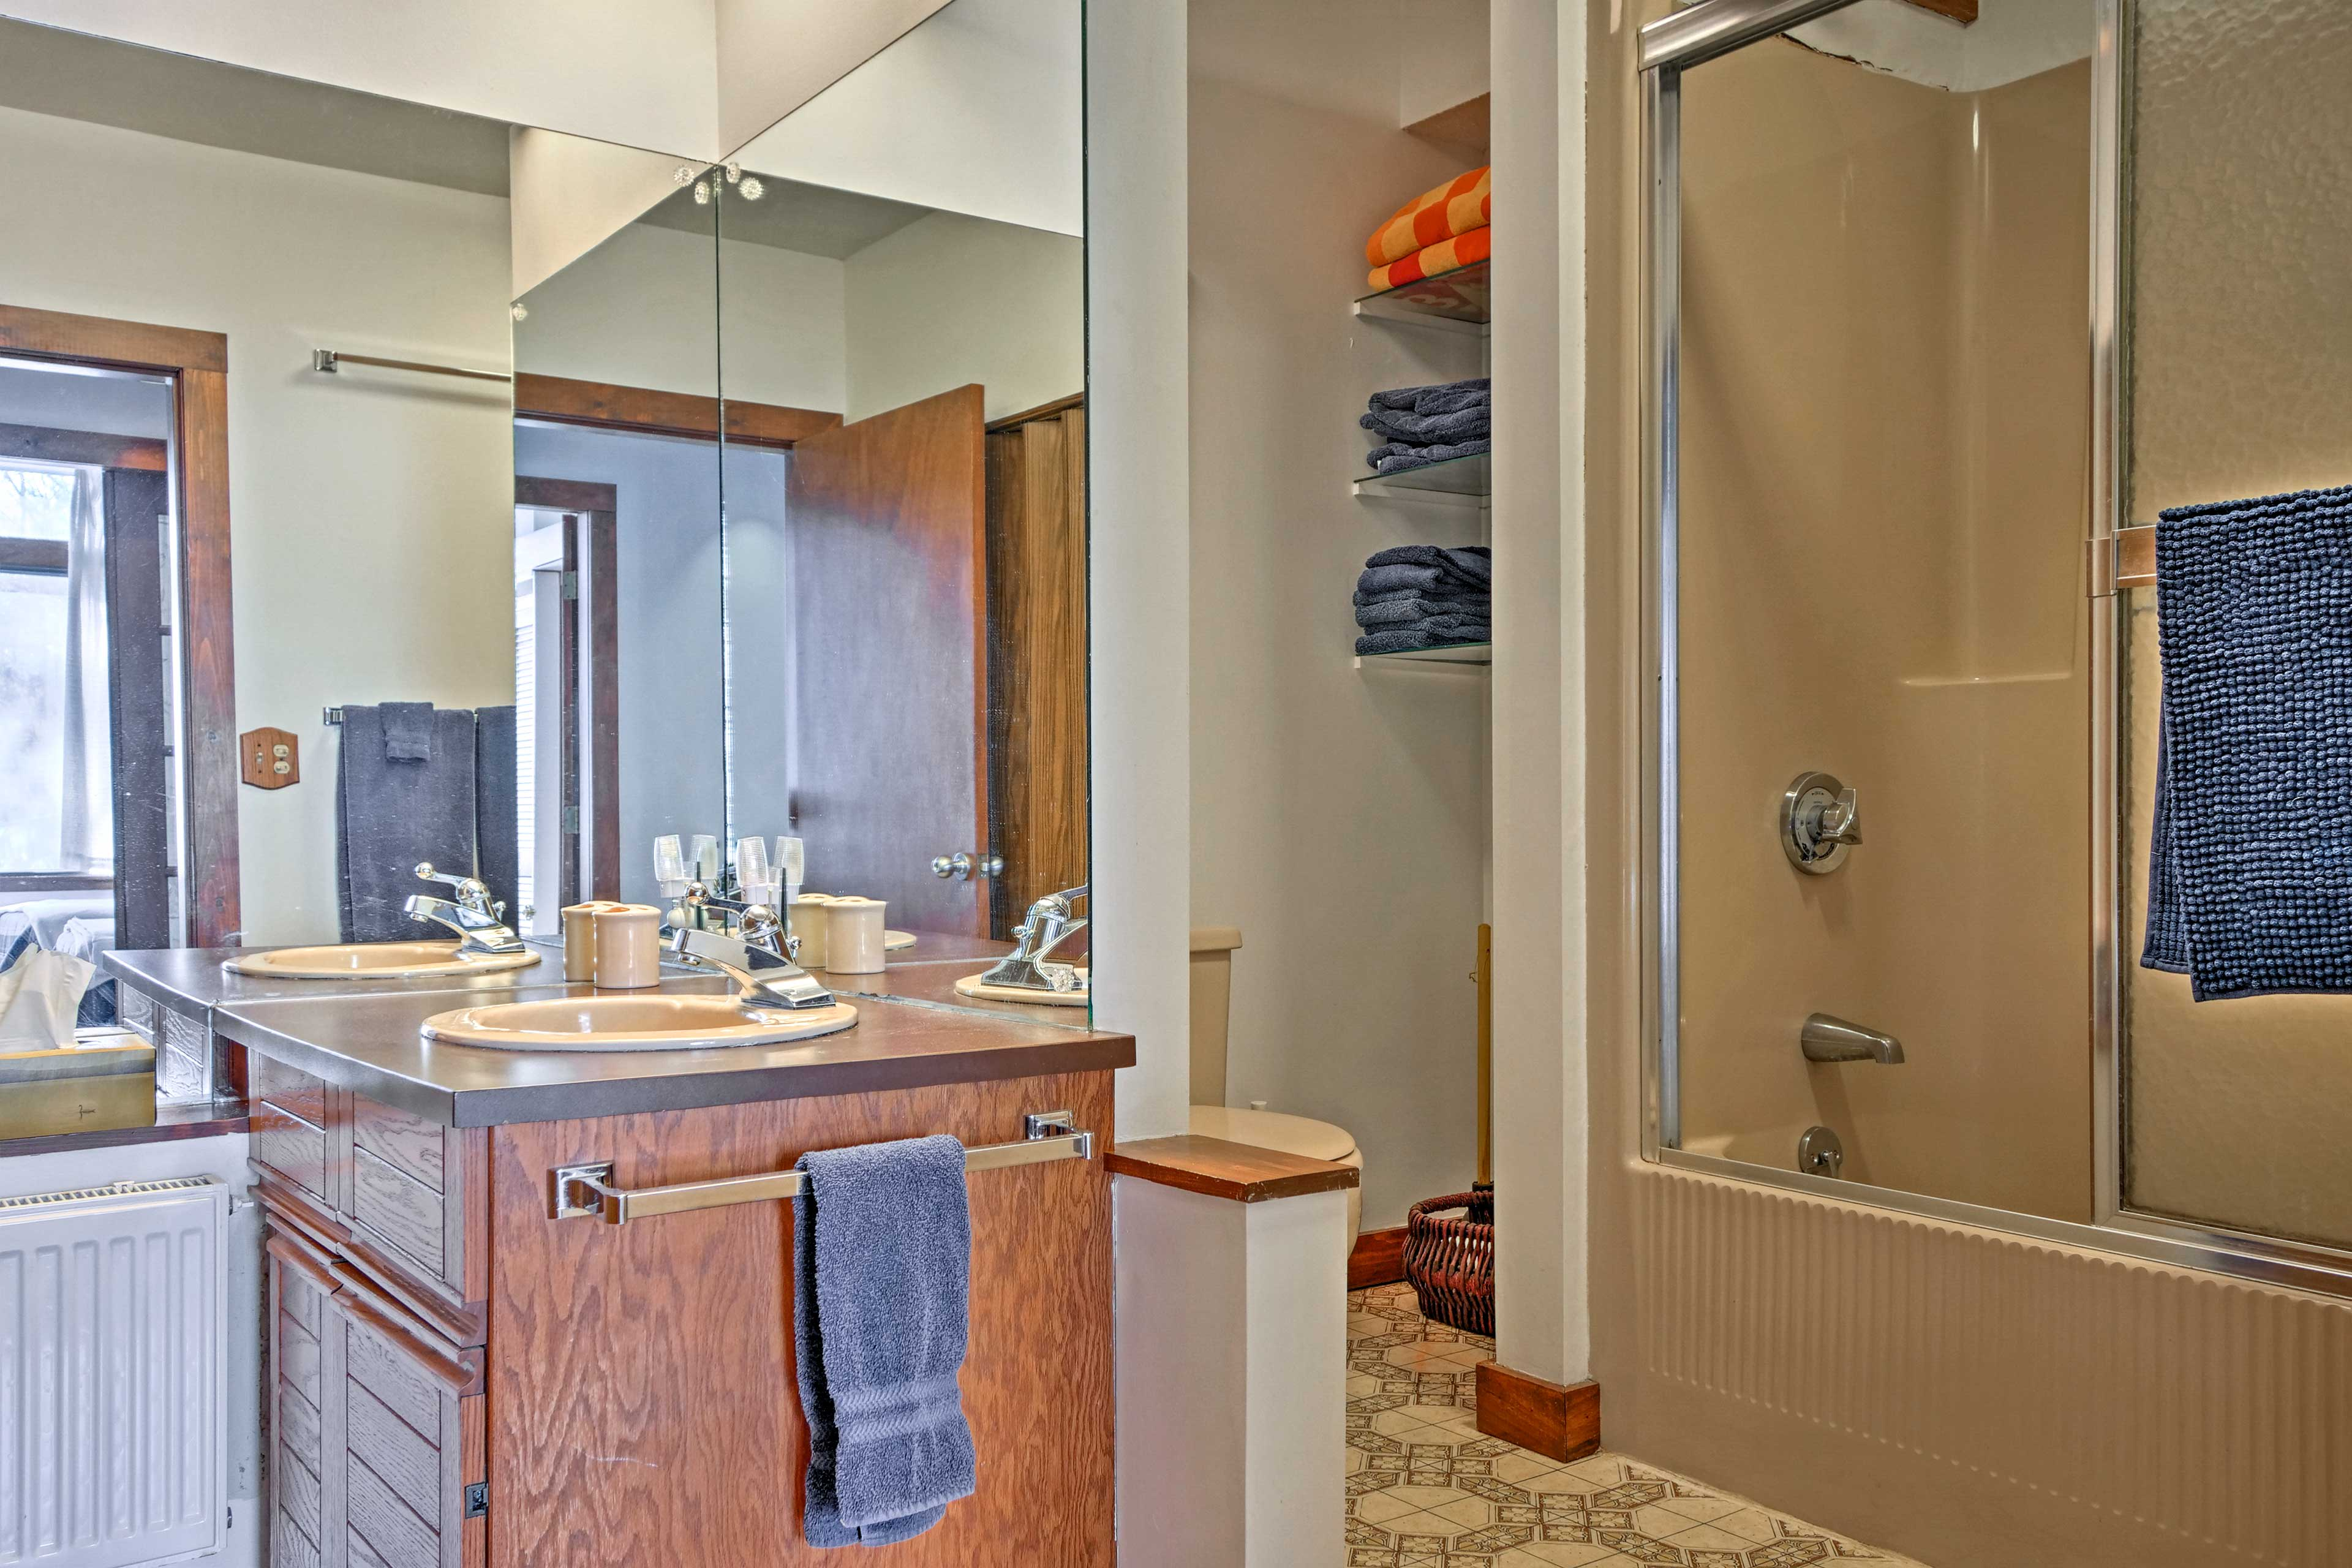 Rinse off the remnants of your hike in this bathroom's shower/tub combo.